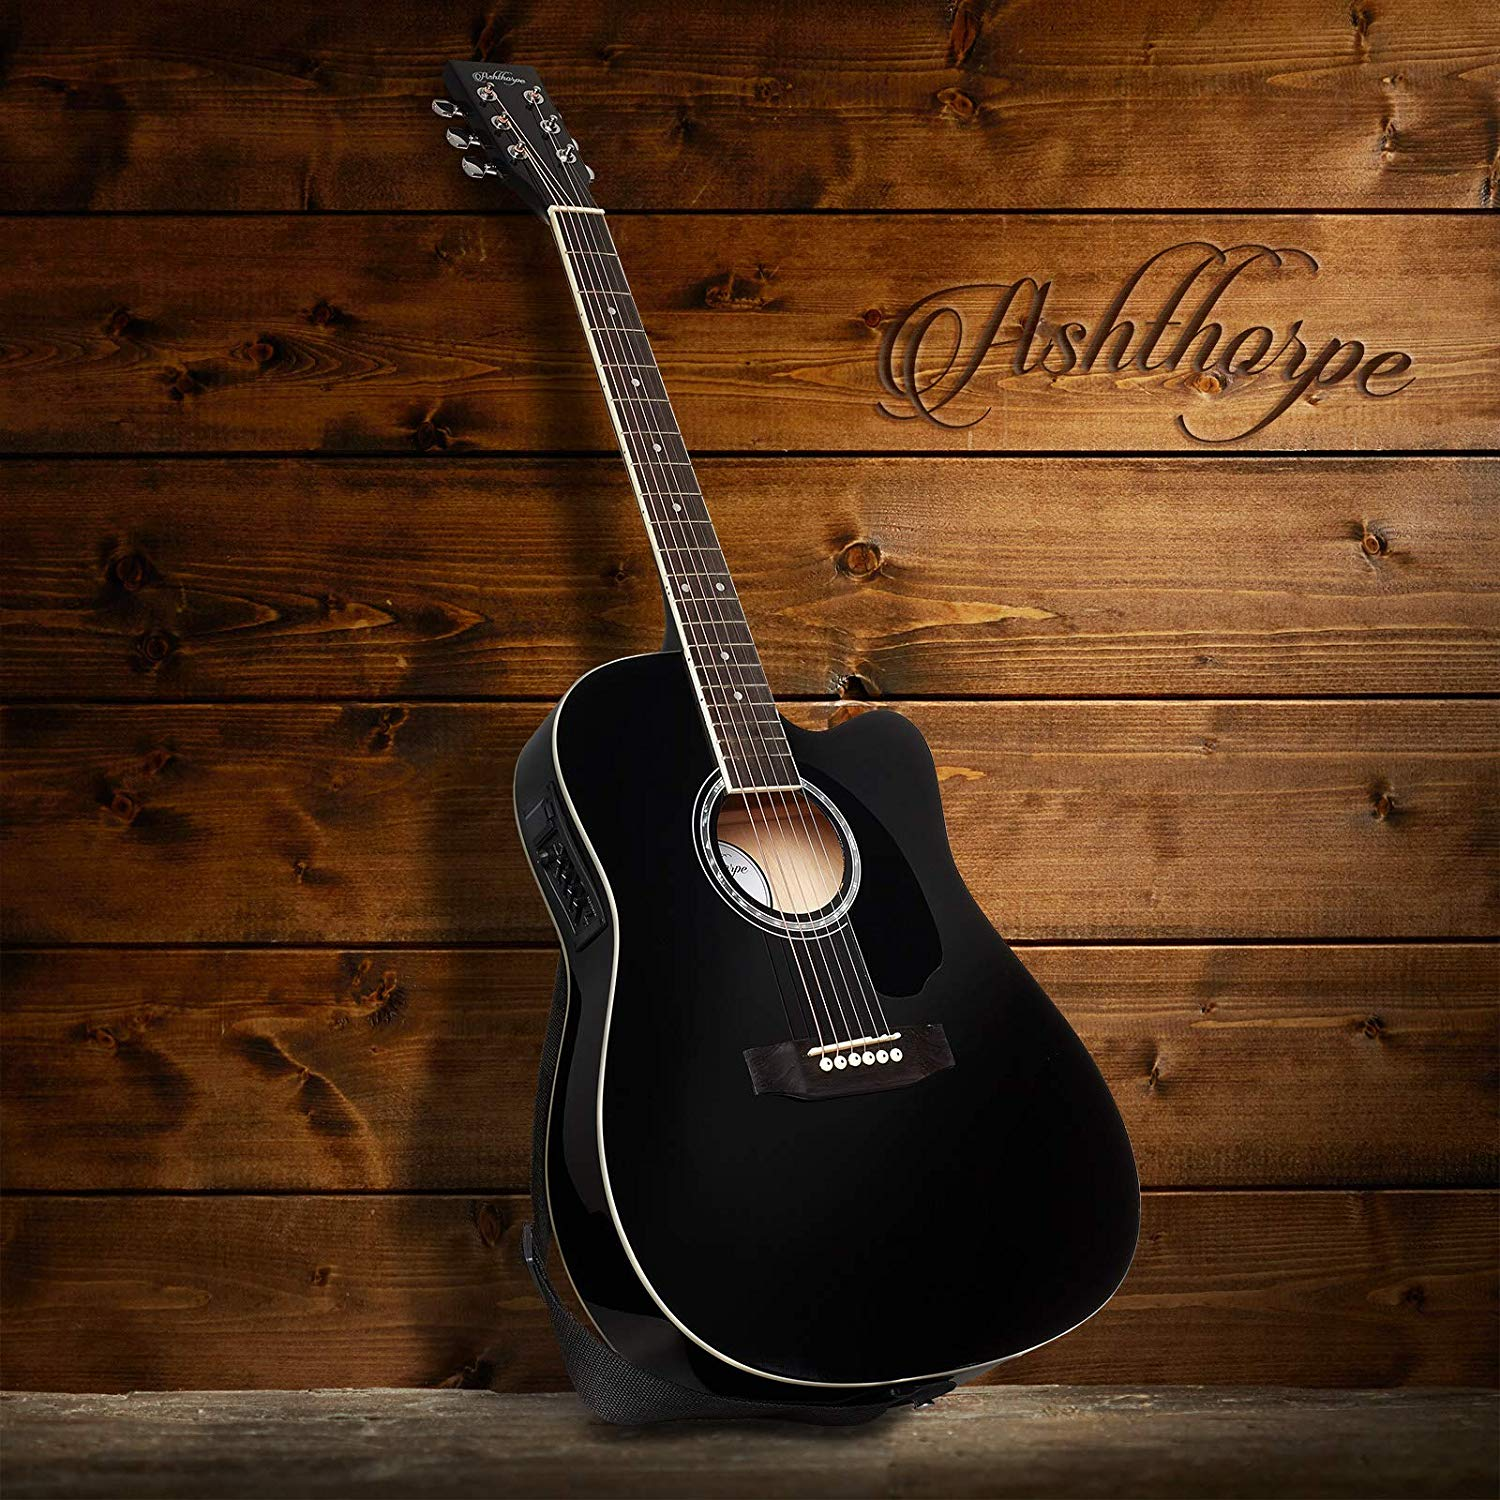 Ashthorpe Acoustic-Electric guitar on display in front of a wall of wood